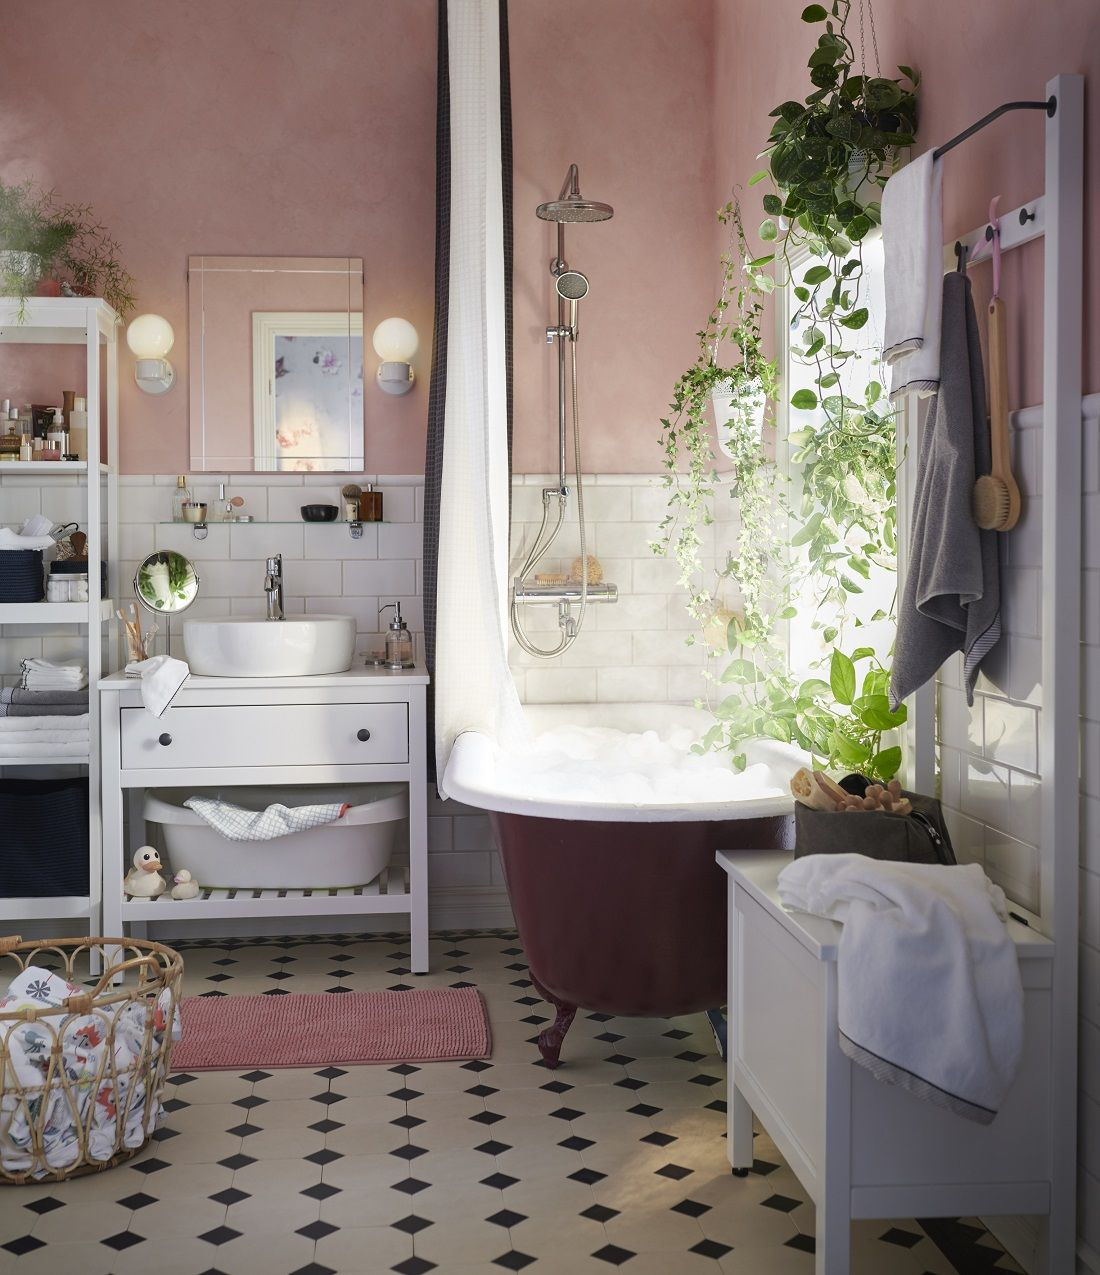 The Nordroom Pink Bathroom From The Ikea Spring Catalog 2019 Ikea Bathroom Pink Bathroom Bathroom Inspiration